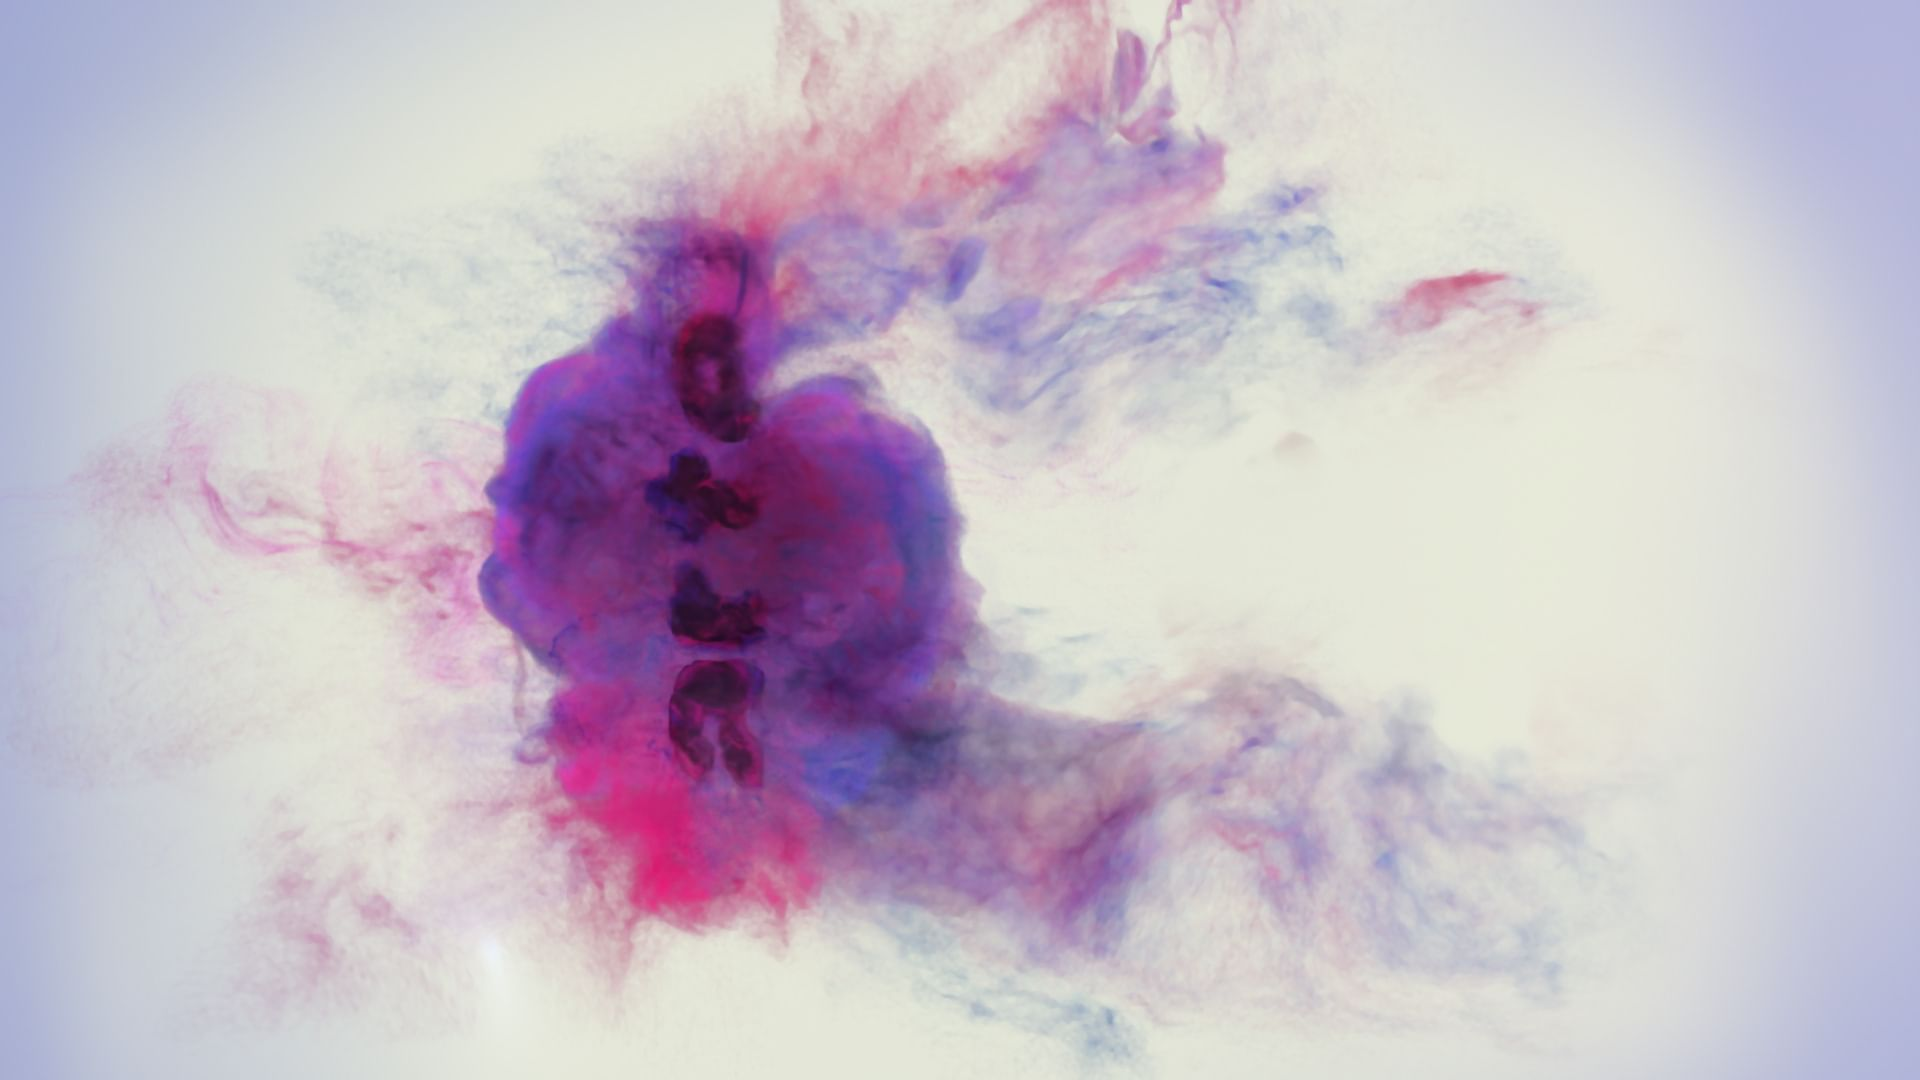 The Nuits Sonores festival transforms Lyon into an artistic playground.